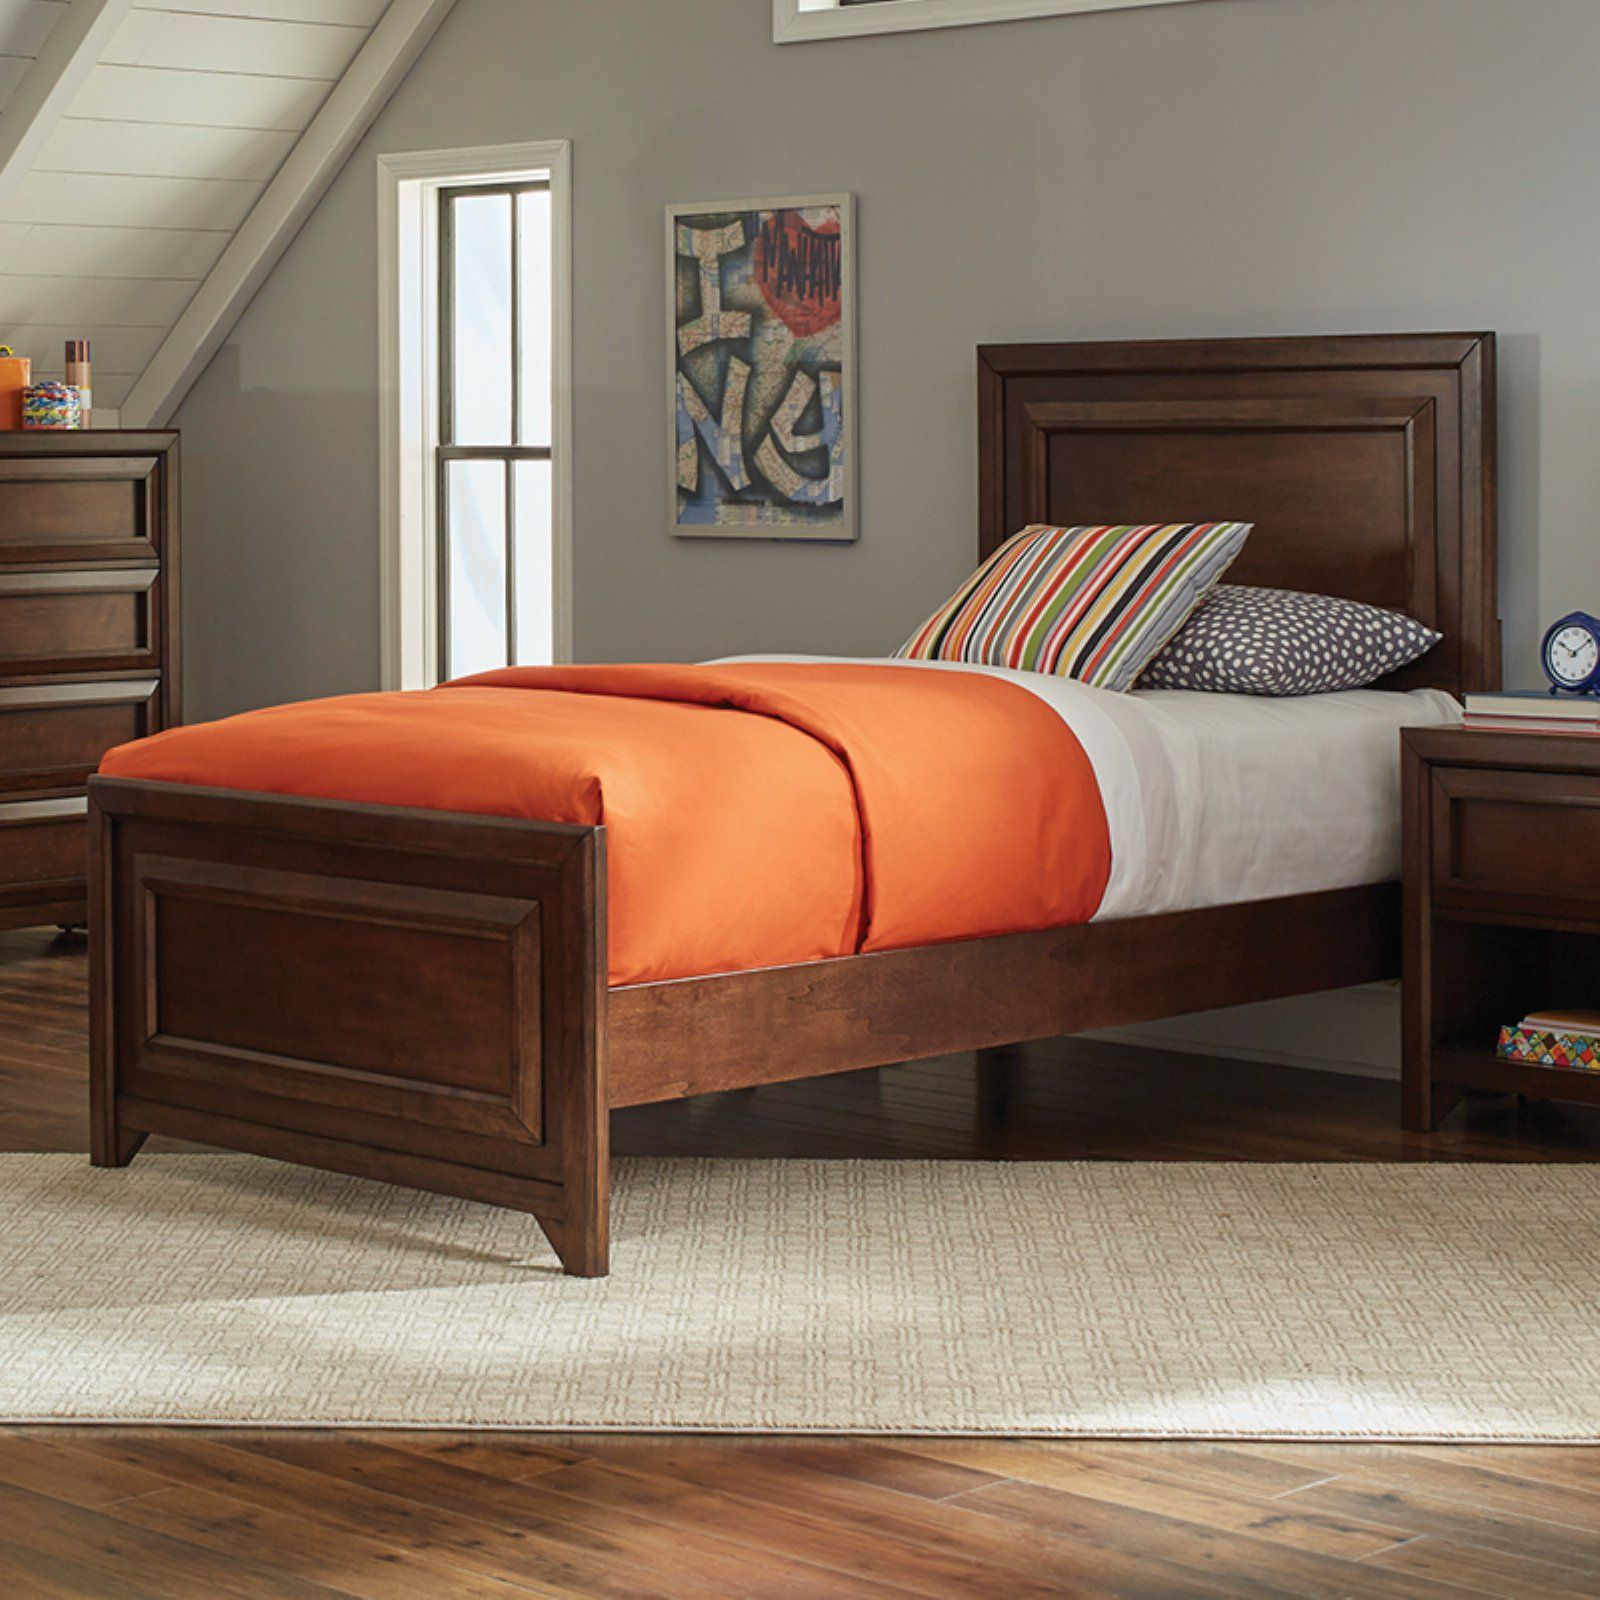 Coaster Furniture Greenough Bed With Picture Frame Detail Maple